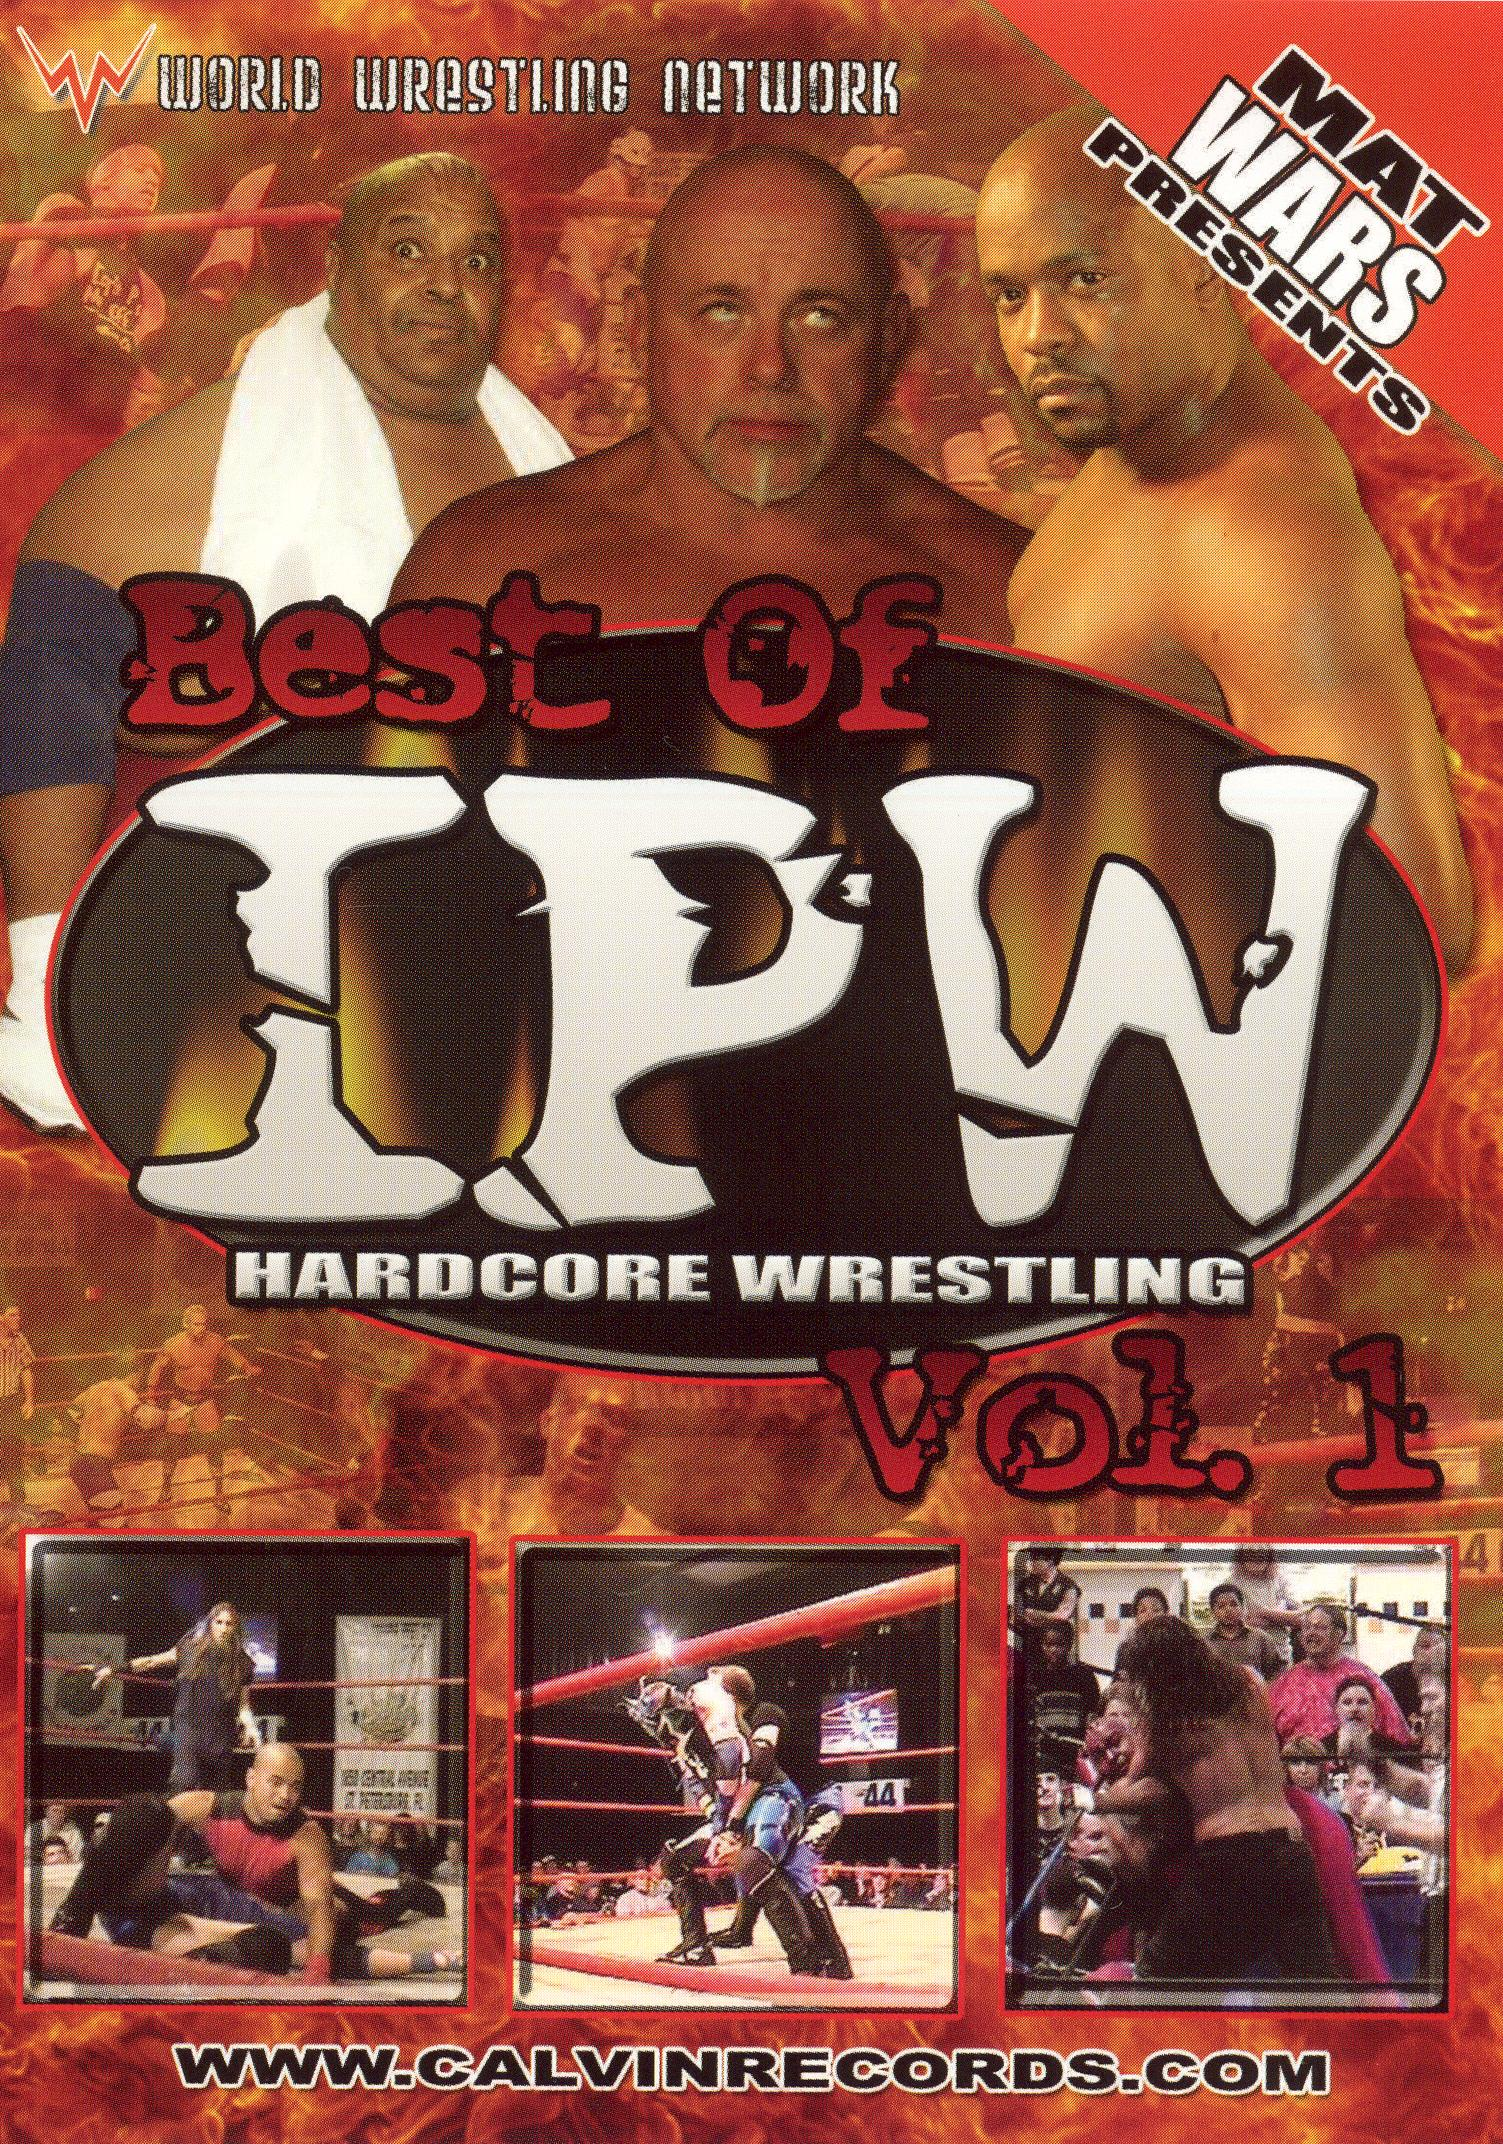 Mat Wars: Best of IPW Hardcore Wrestling, Vol. 1